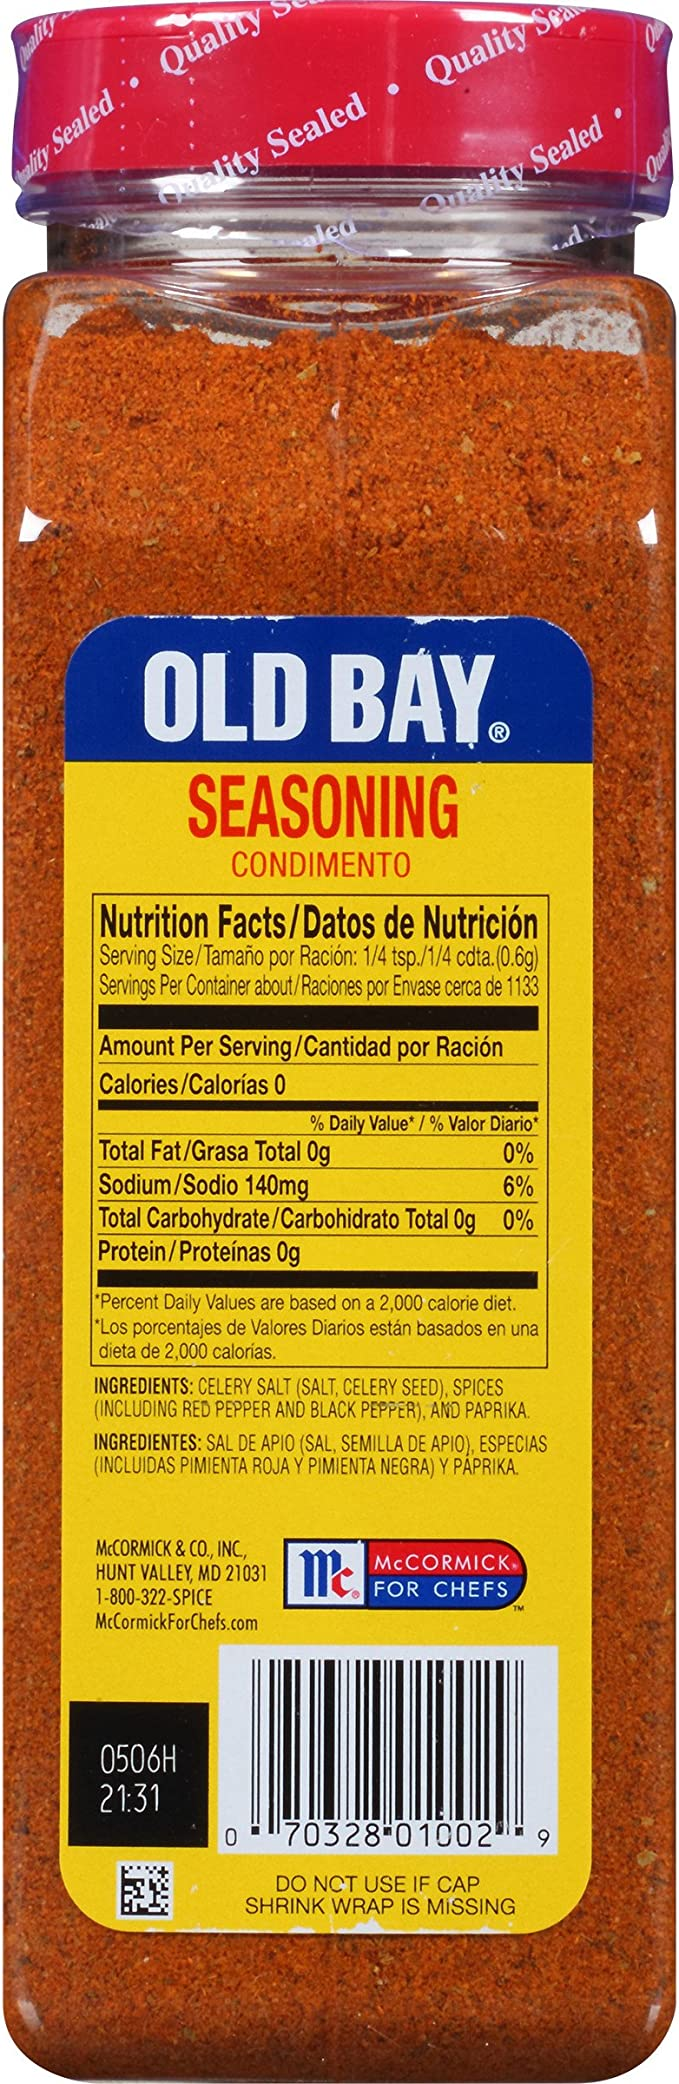 McCormick Old Bay Seasoning for Seafood, Poultry, Salads, Meats in ...